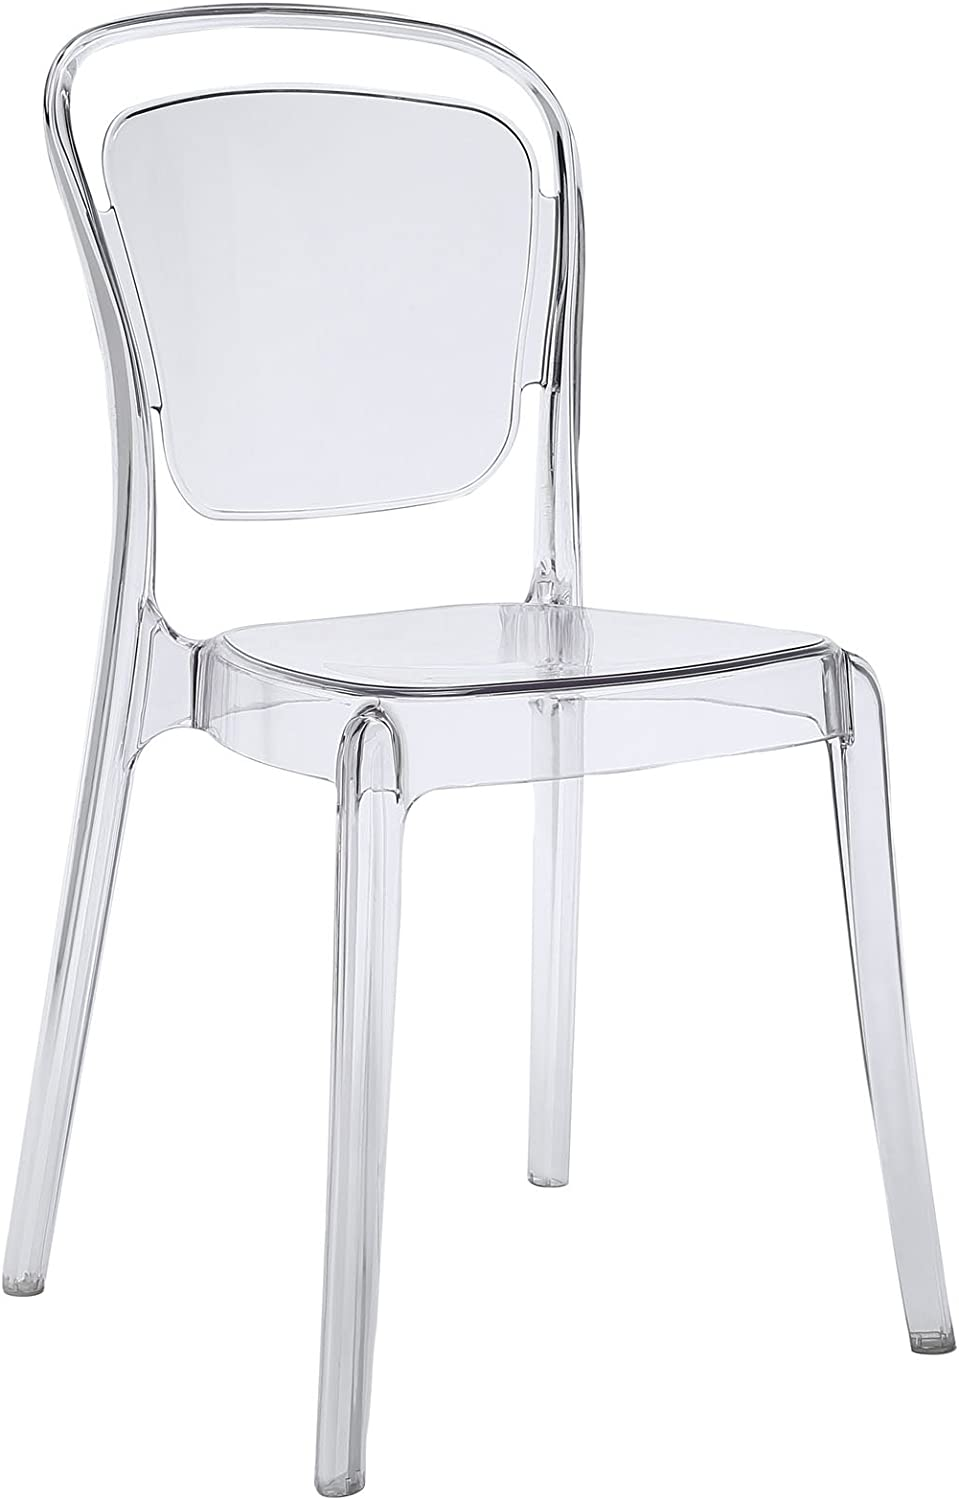 Modway Entreat Acrylic Transparent Dining Side Chair in Clear